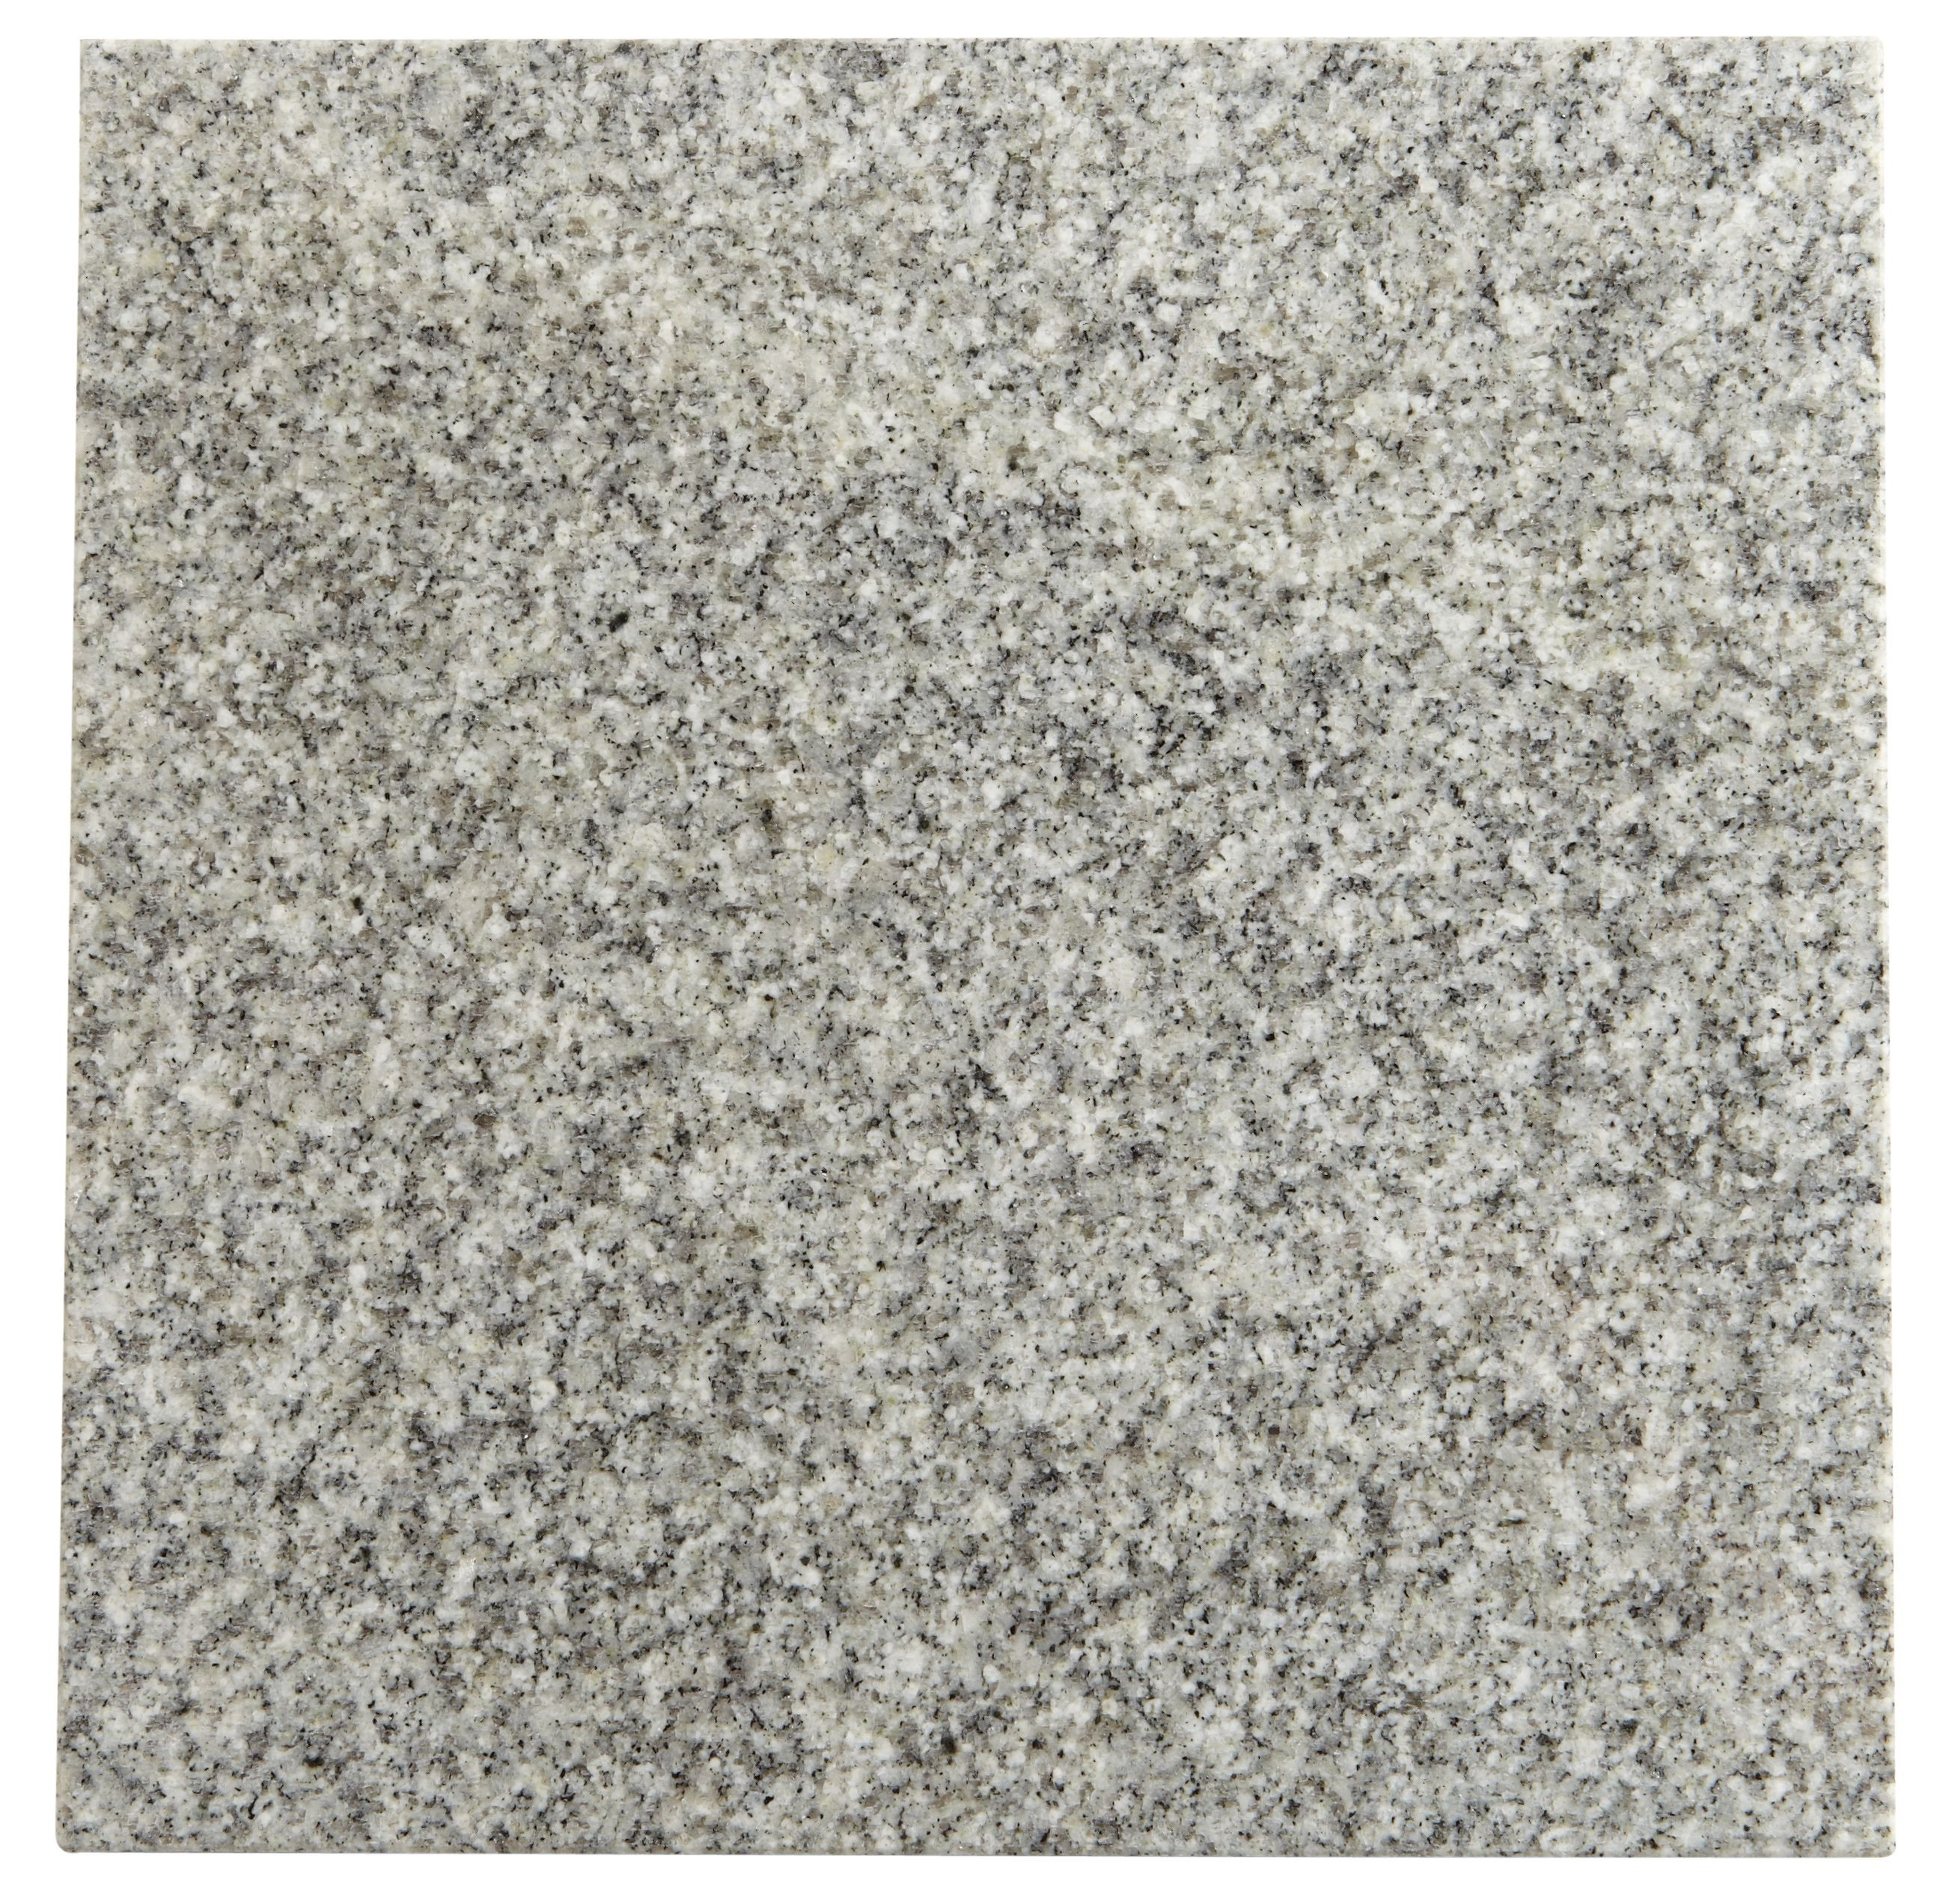 flooring granite marble floors tile for hardware install to entrance tiles kitchen entryway classic nafuu entity floor how